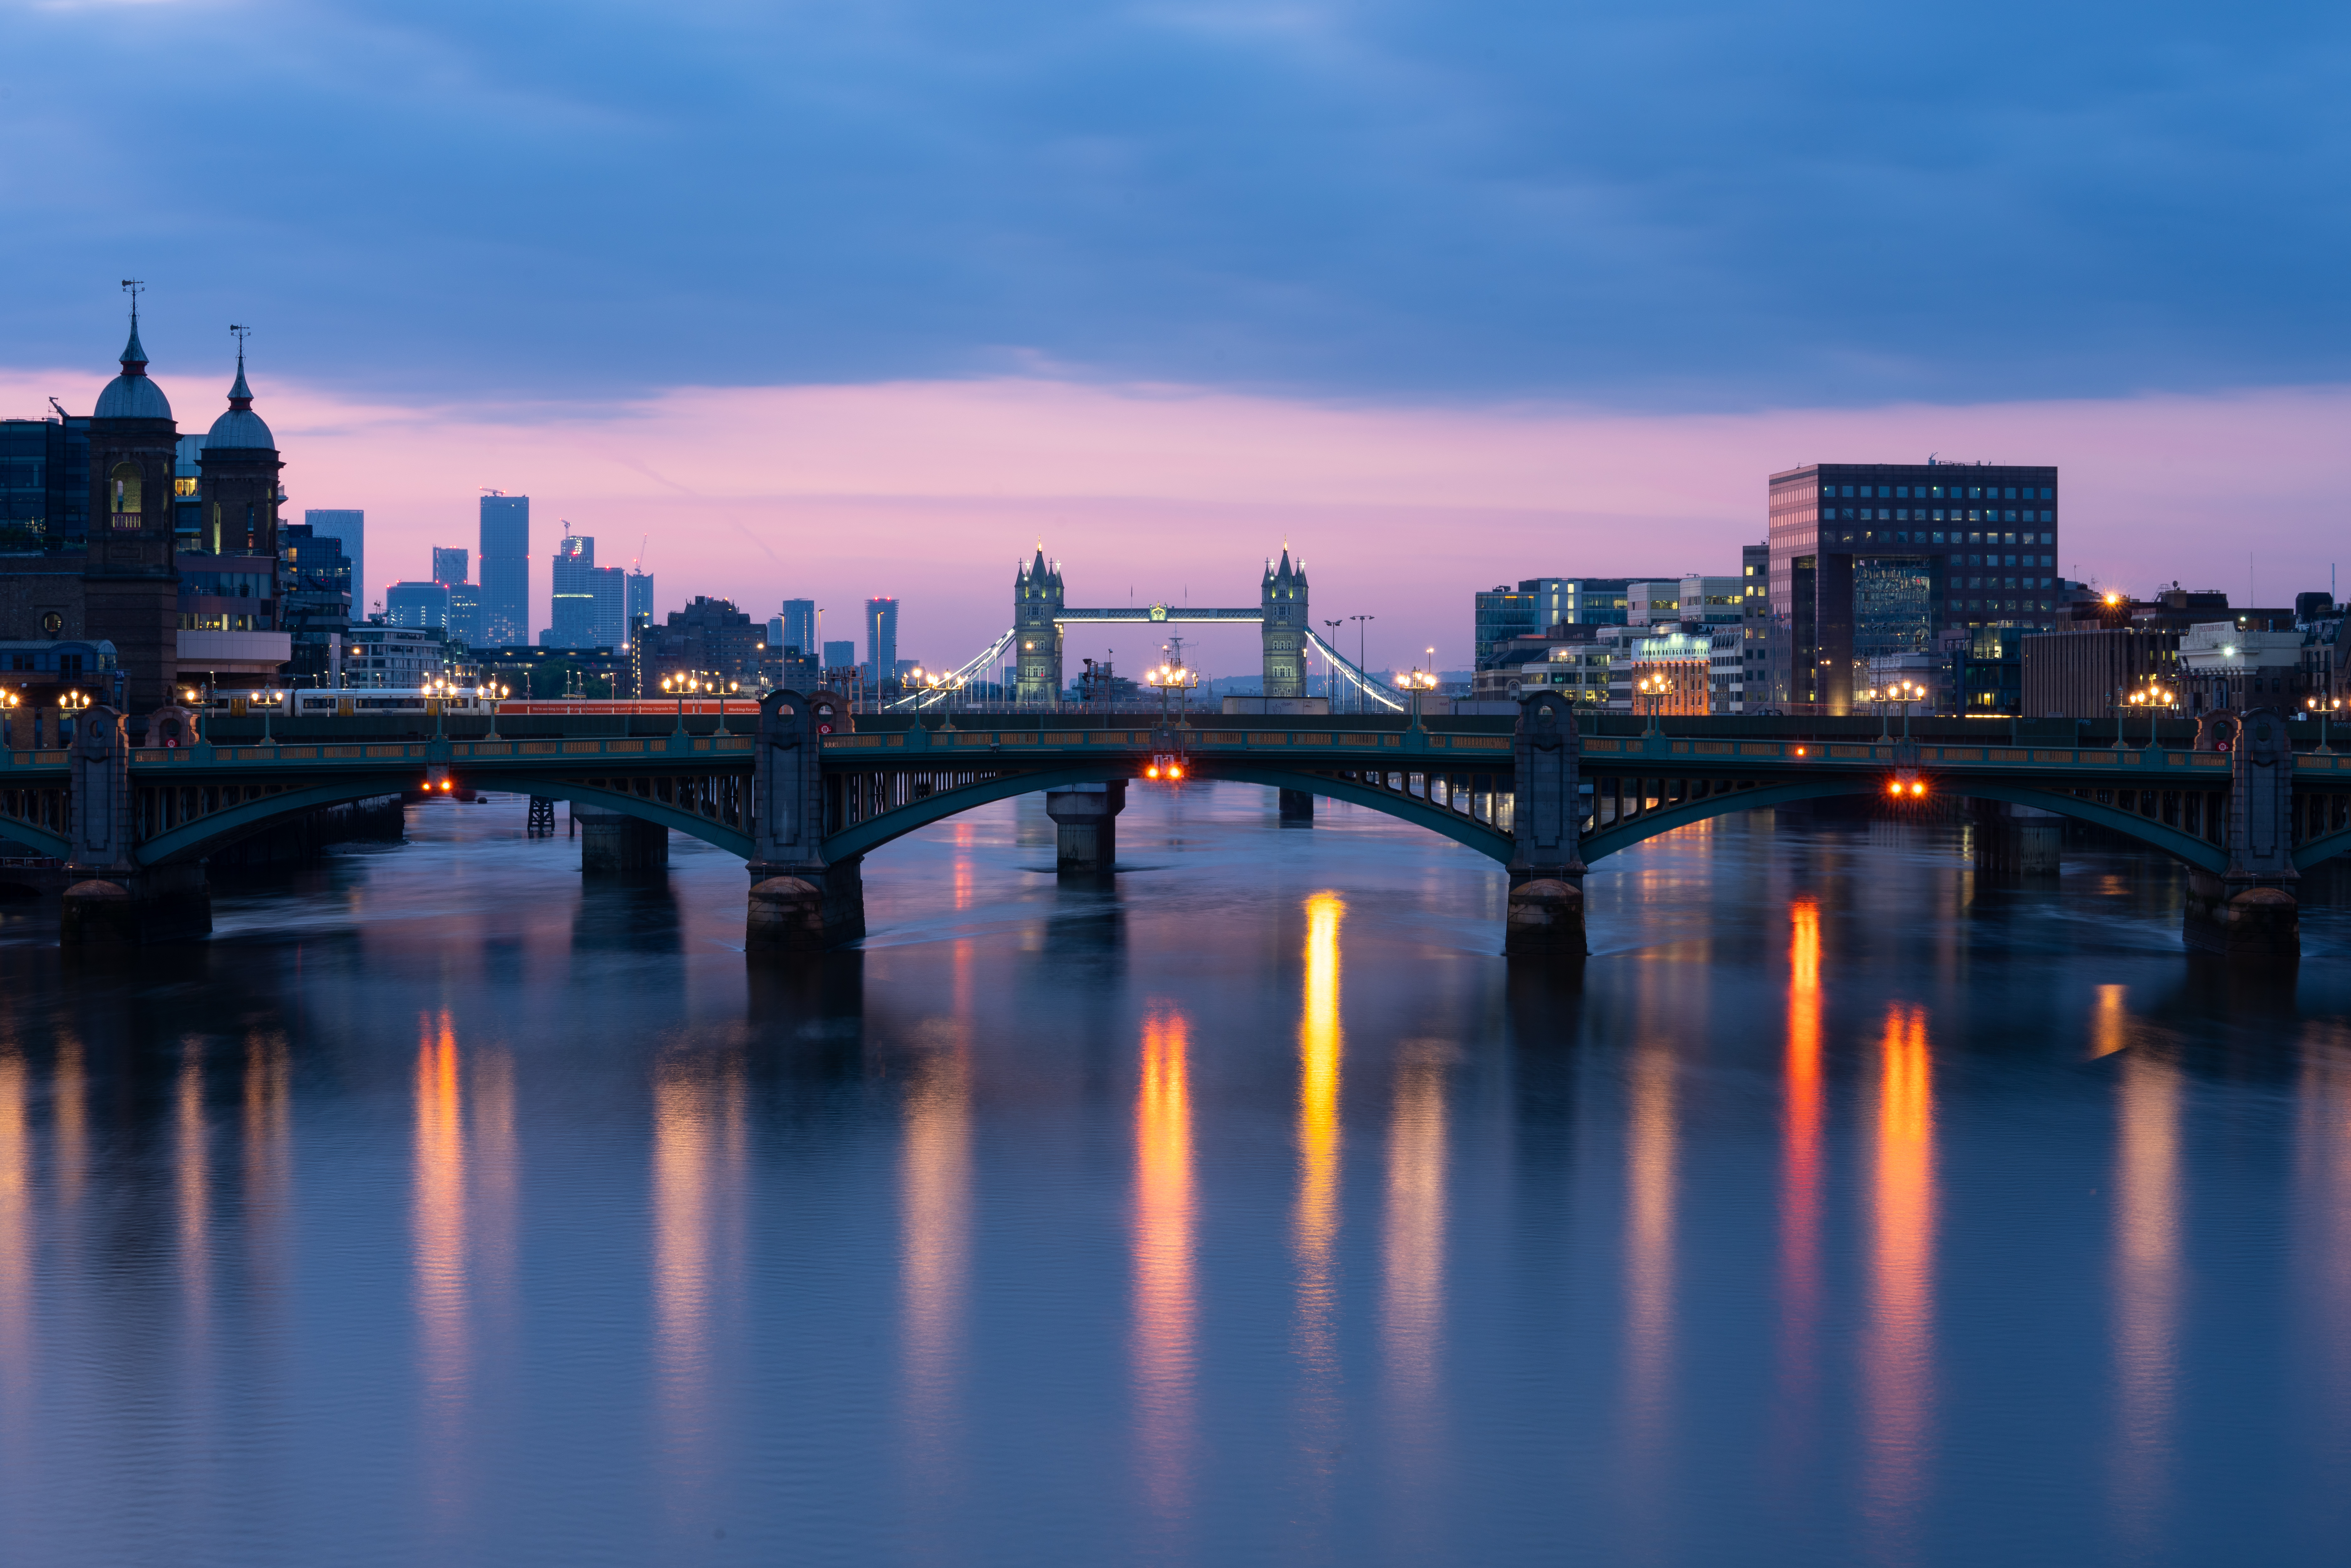 General view of the river Thames in central London at dawn, showing Southwark Bridge, Tower Bridge, and skyscrapers at Canary Wharf, after the introduction of measures to bring the country out of lockdown. (Photo by Dominic Lipinski/PA Images via Getty Images)